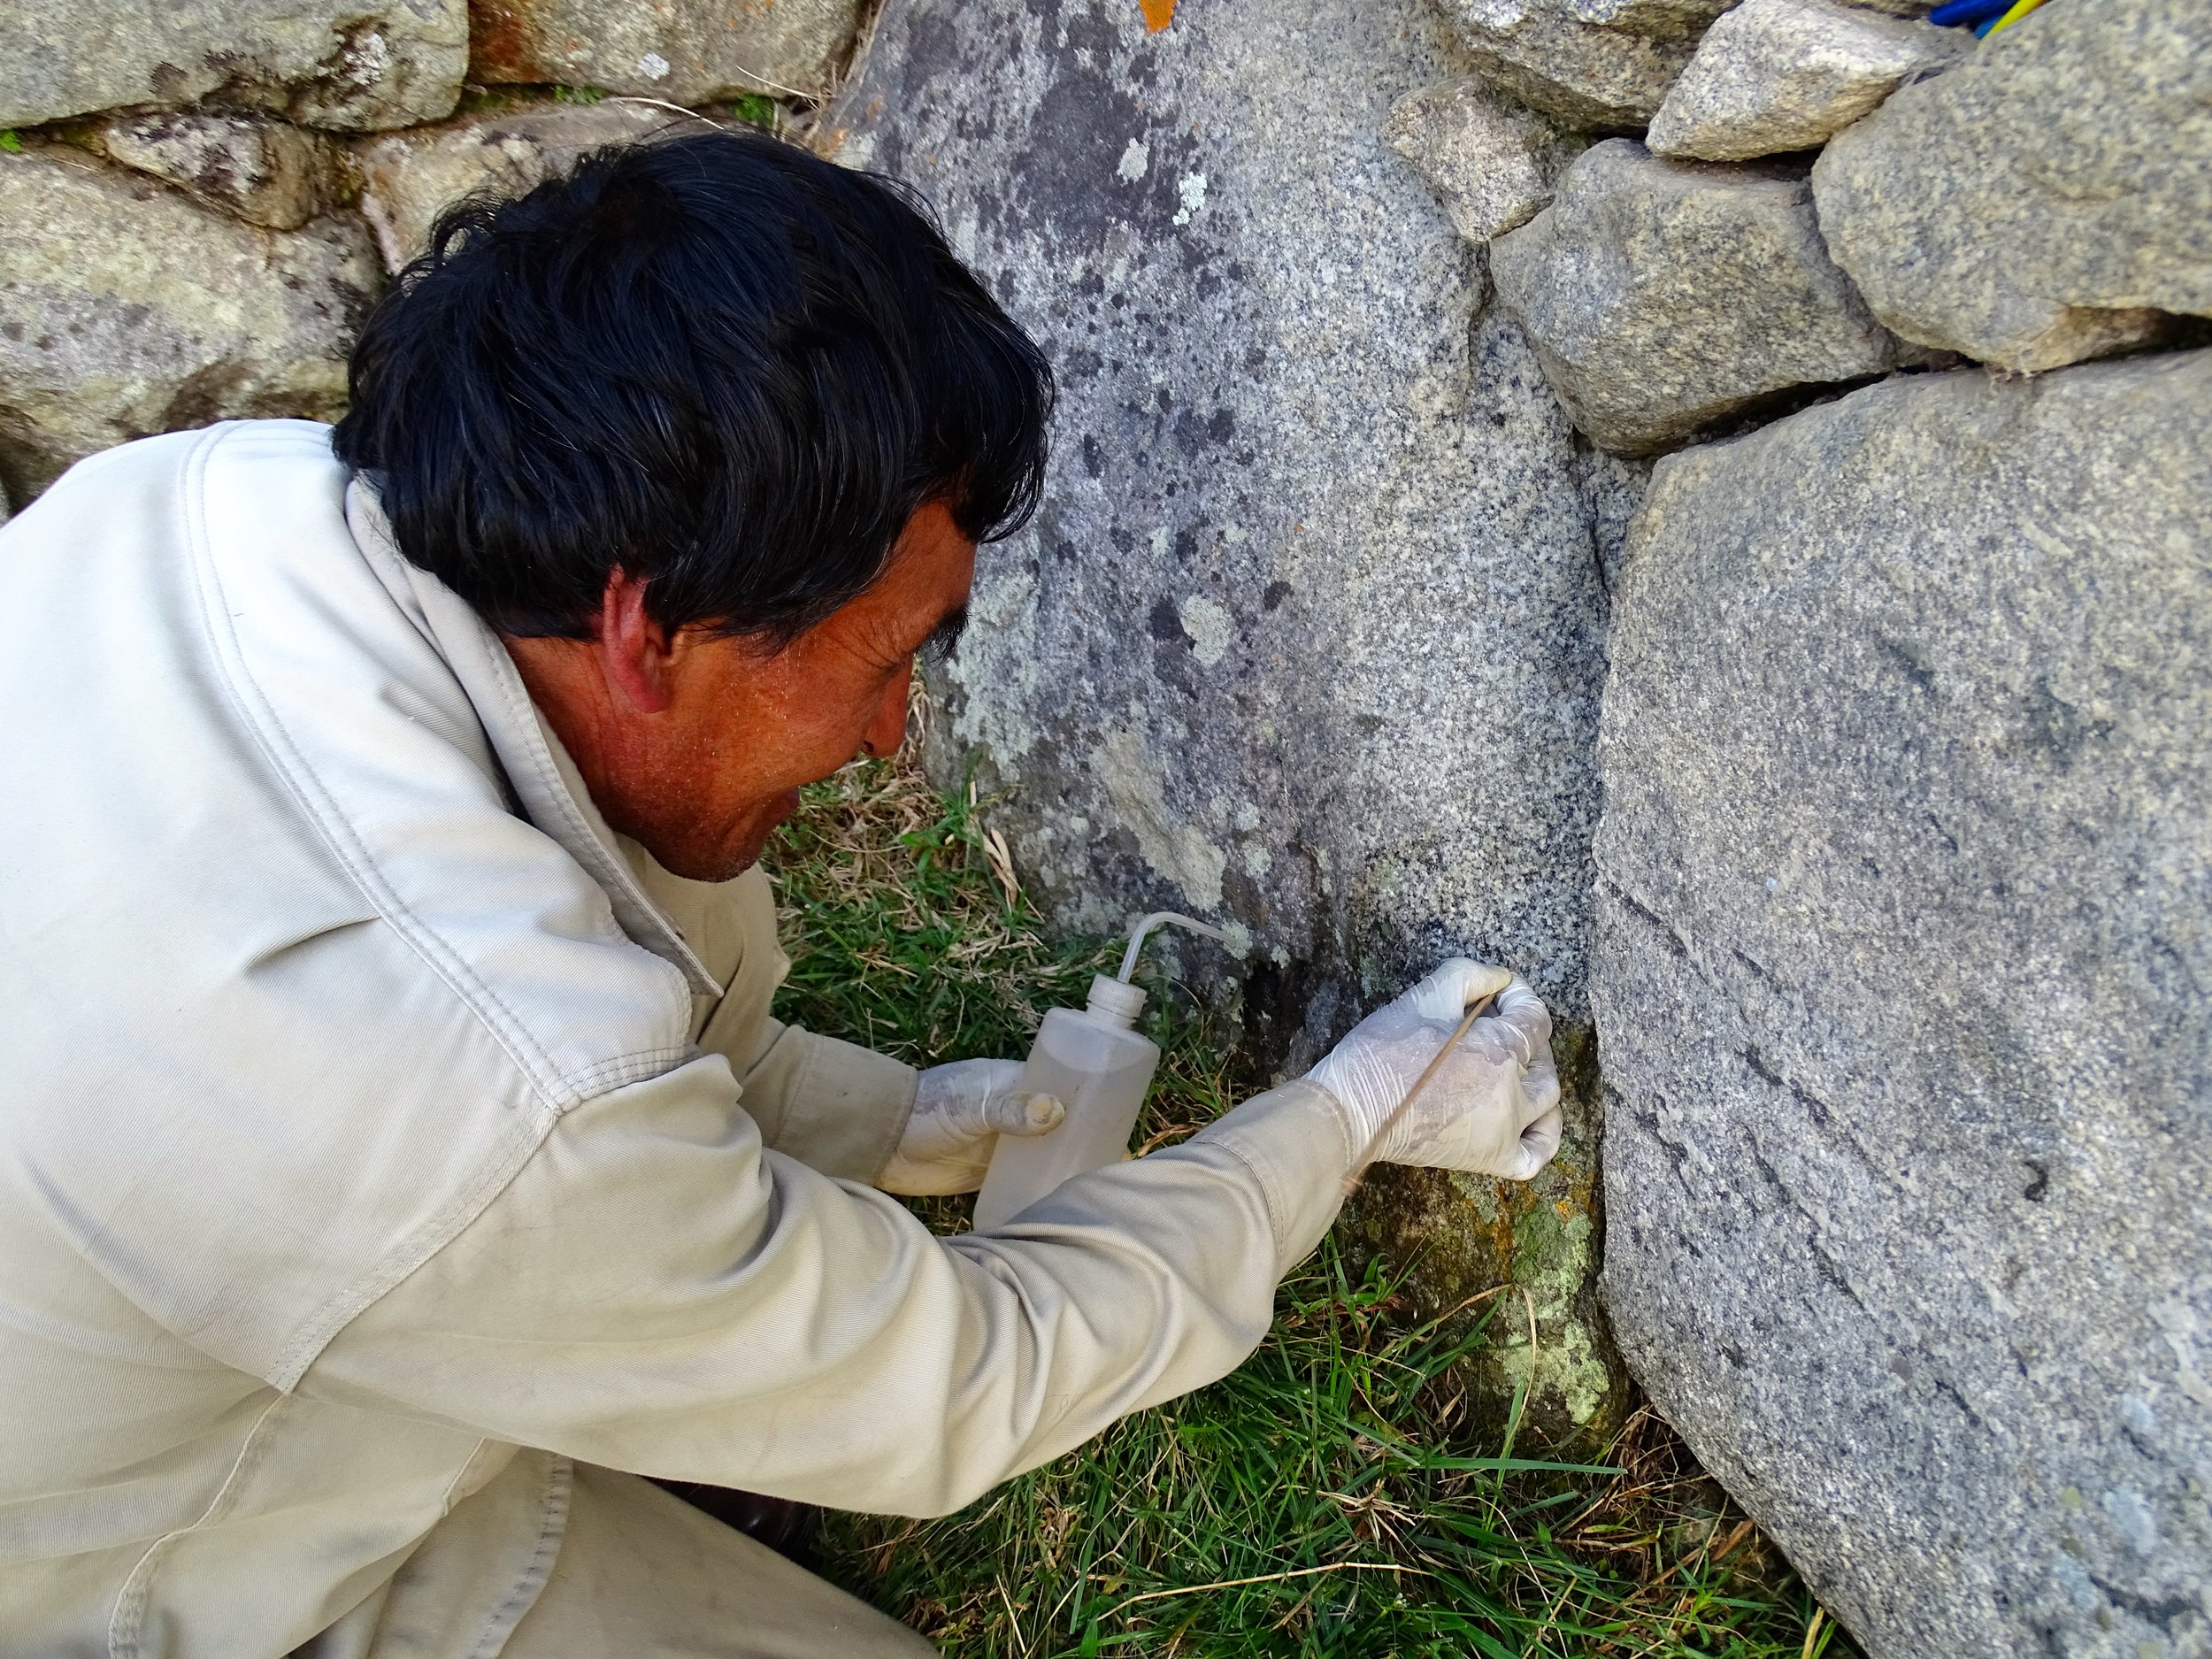 Cleaning the acidic lichens off the stones, using only distilled water, brushes, and soft wood tools.  An endless job to preserve the stones.